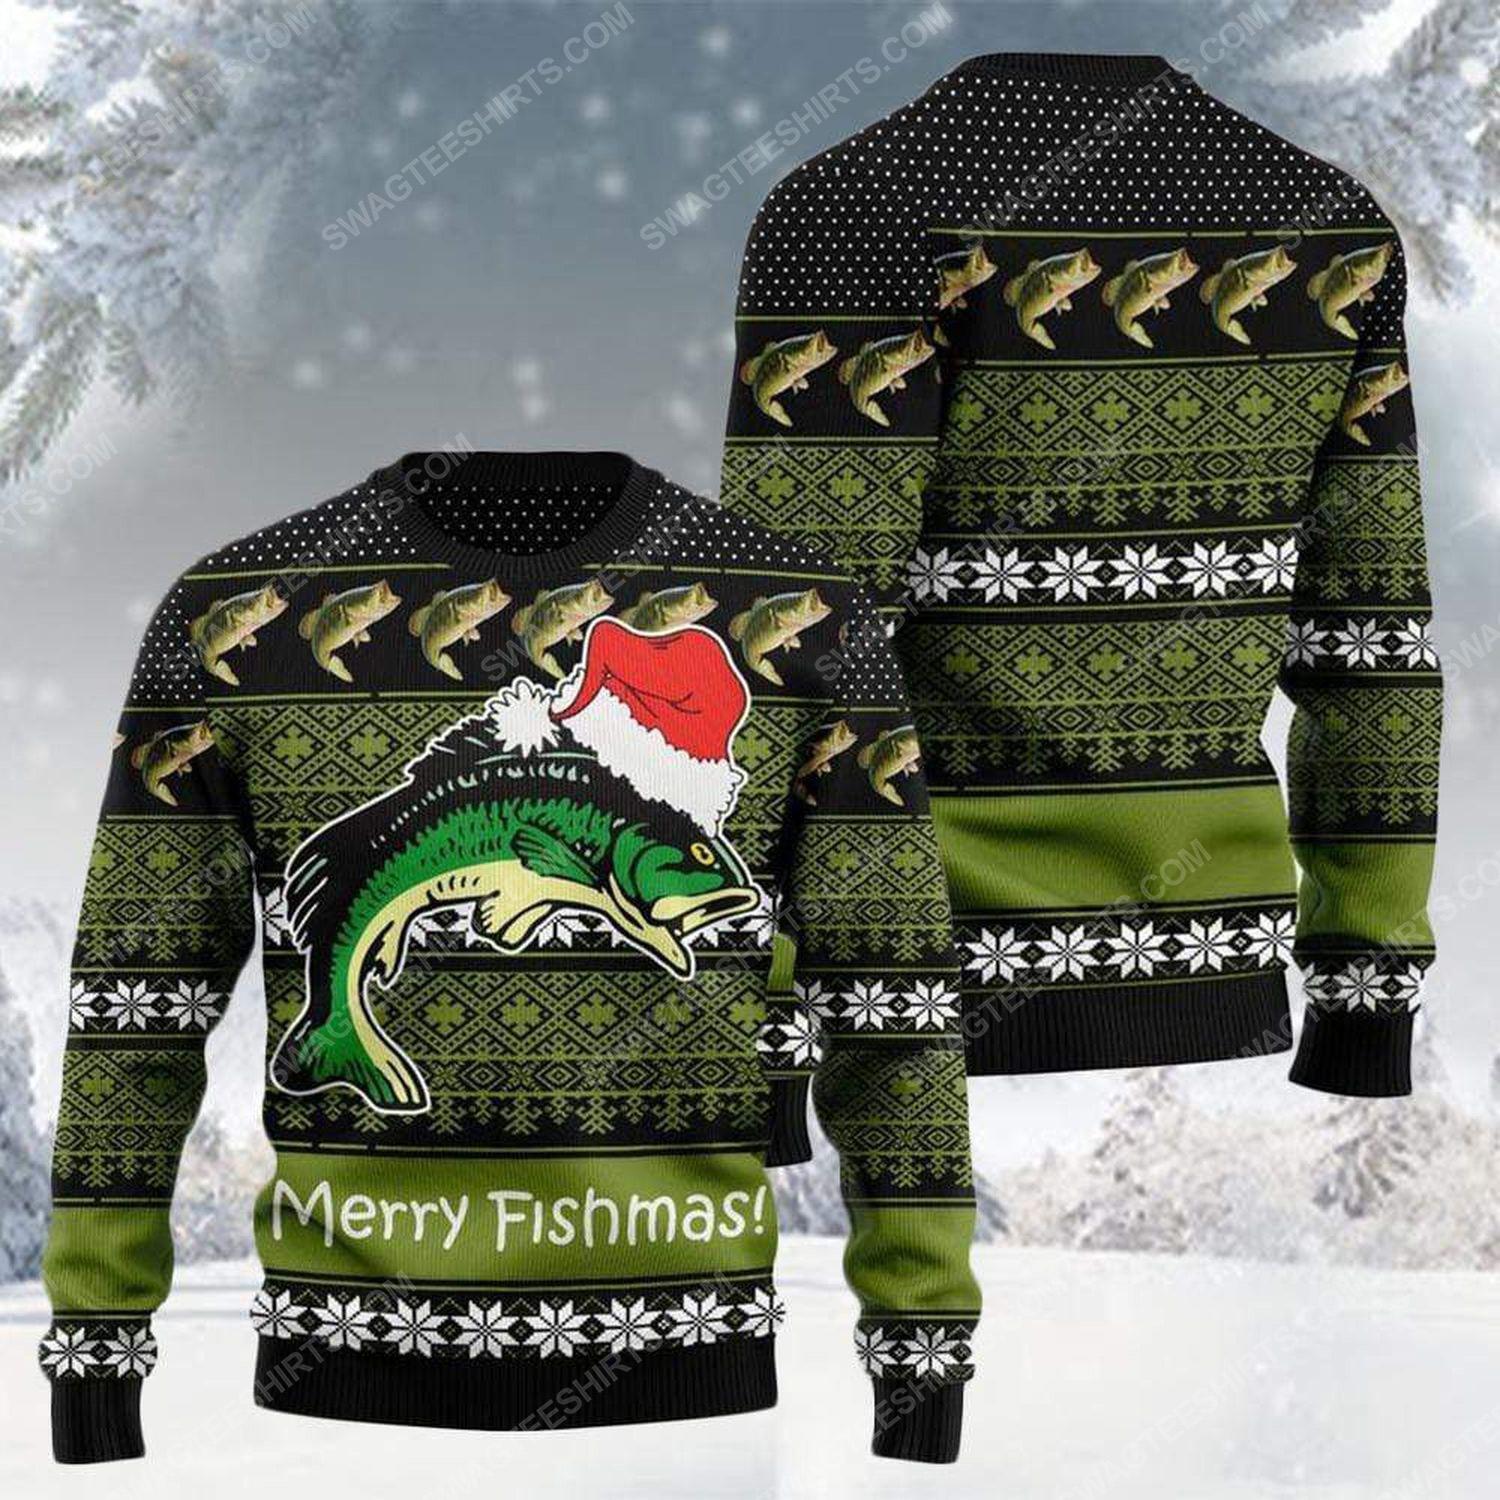 Merry fishmas for fishing all over print ugly christmas sweater